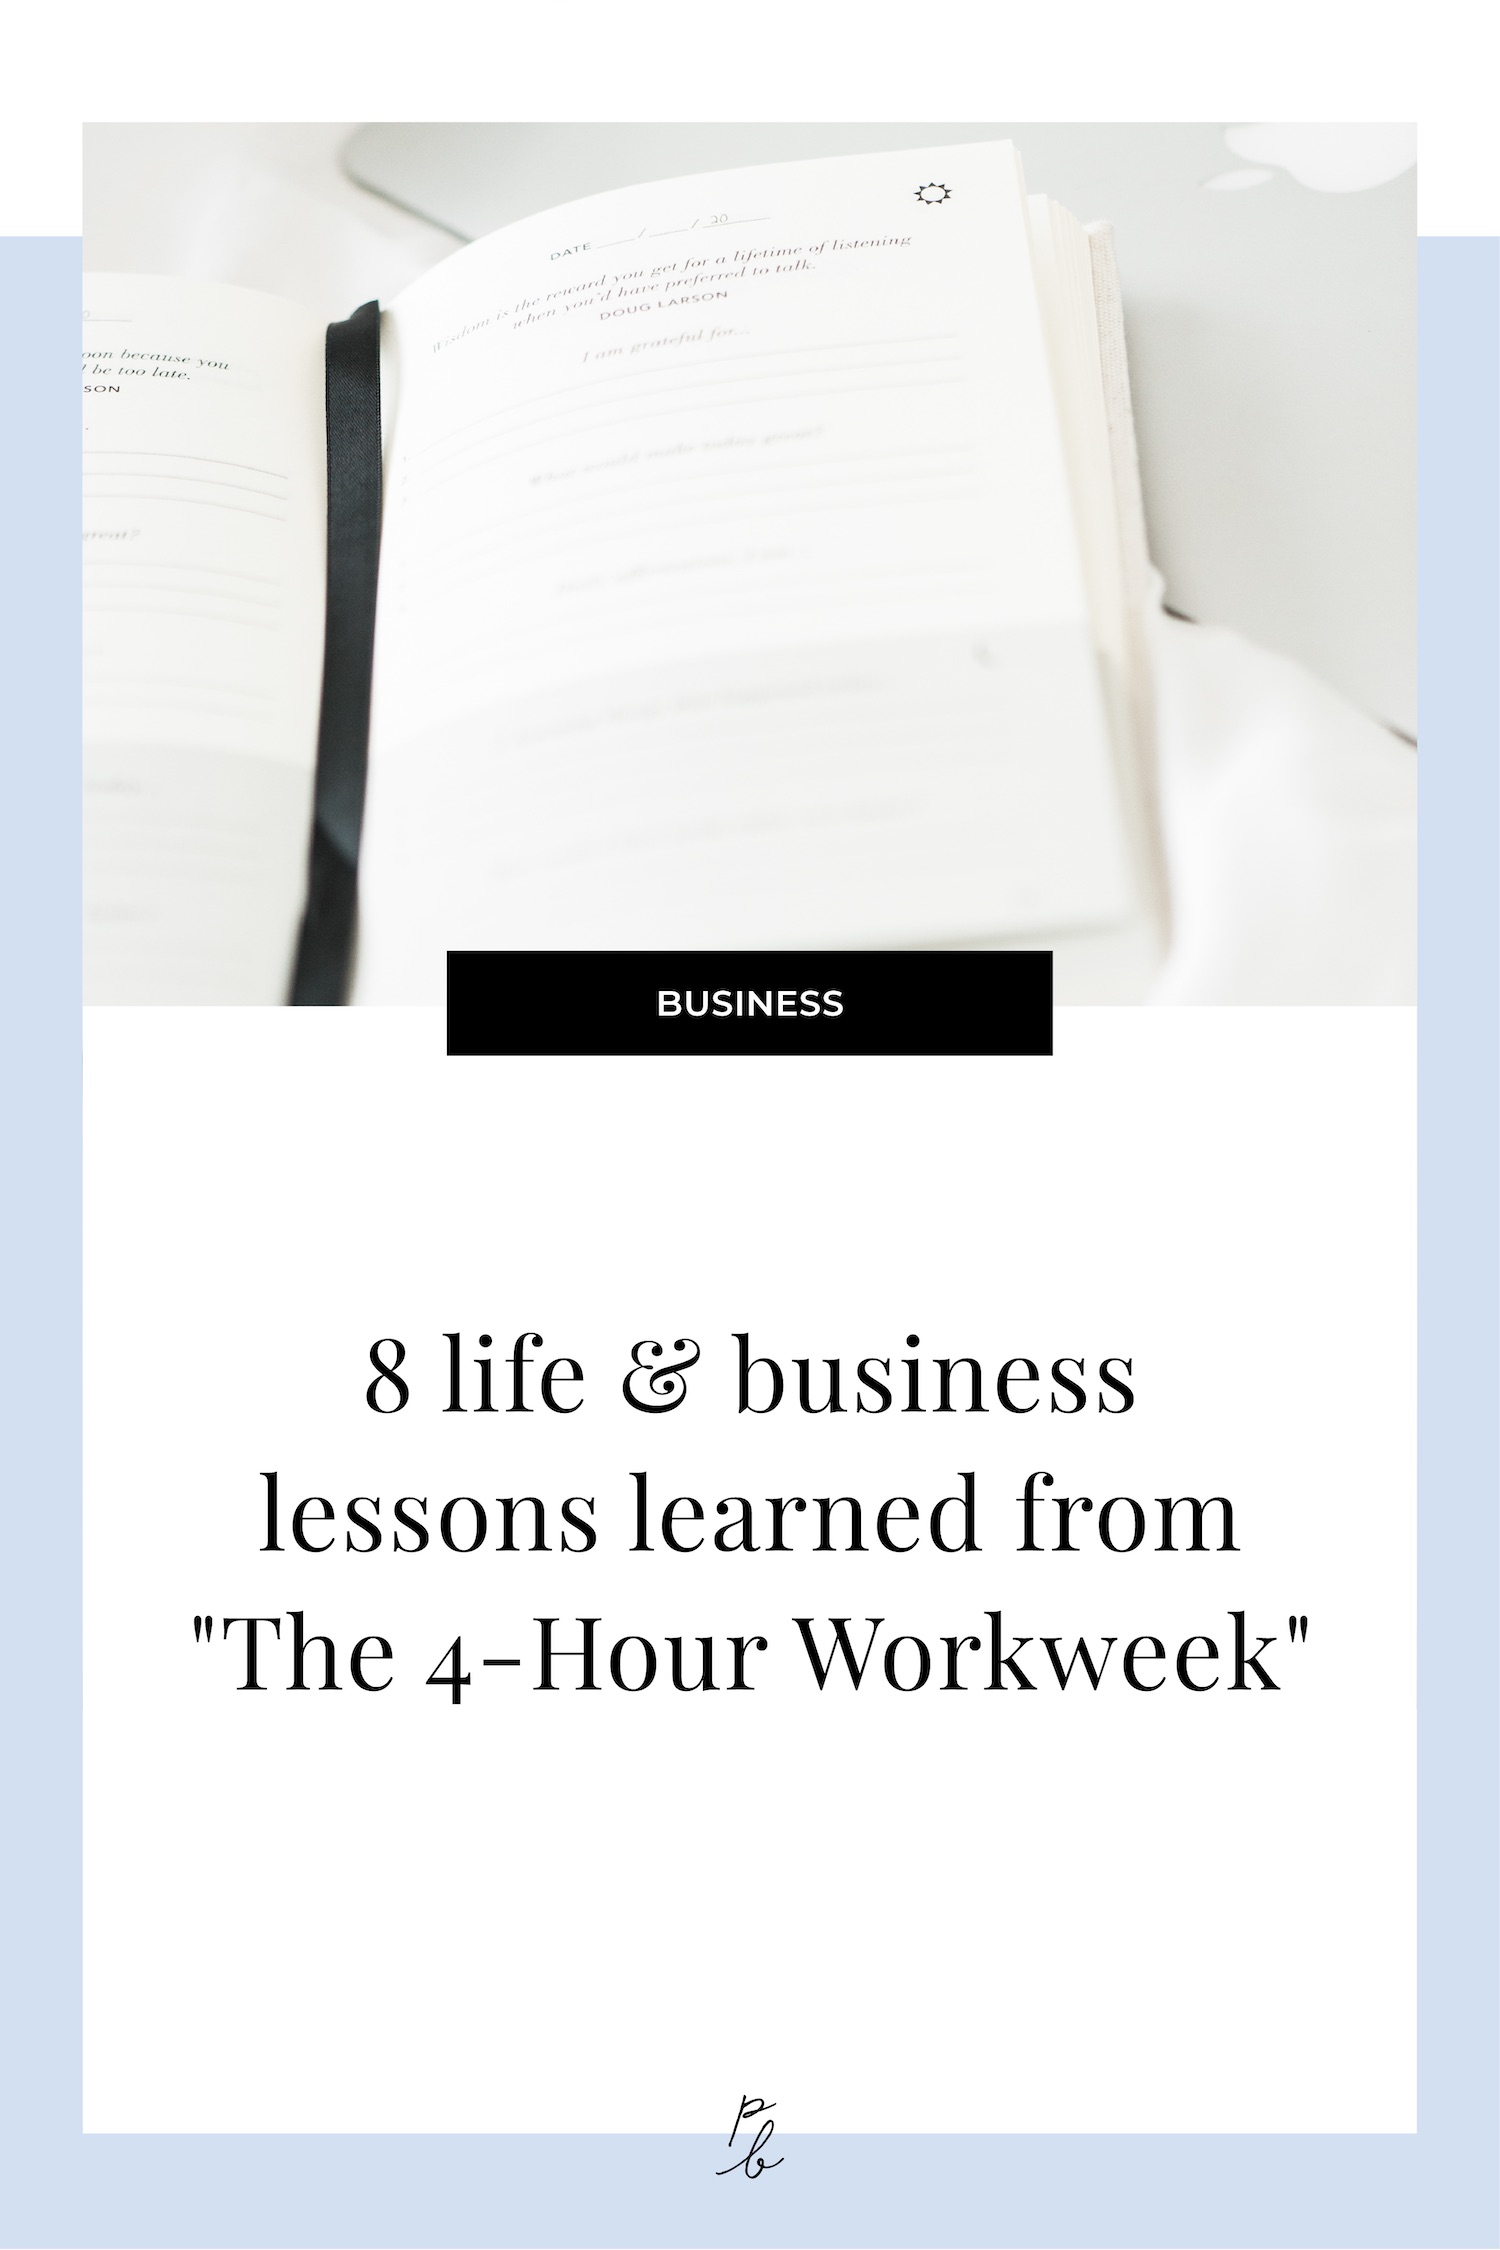 8 life and business lessons learned from the 4 hour workweek.jpg